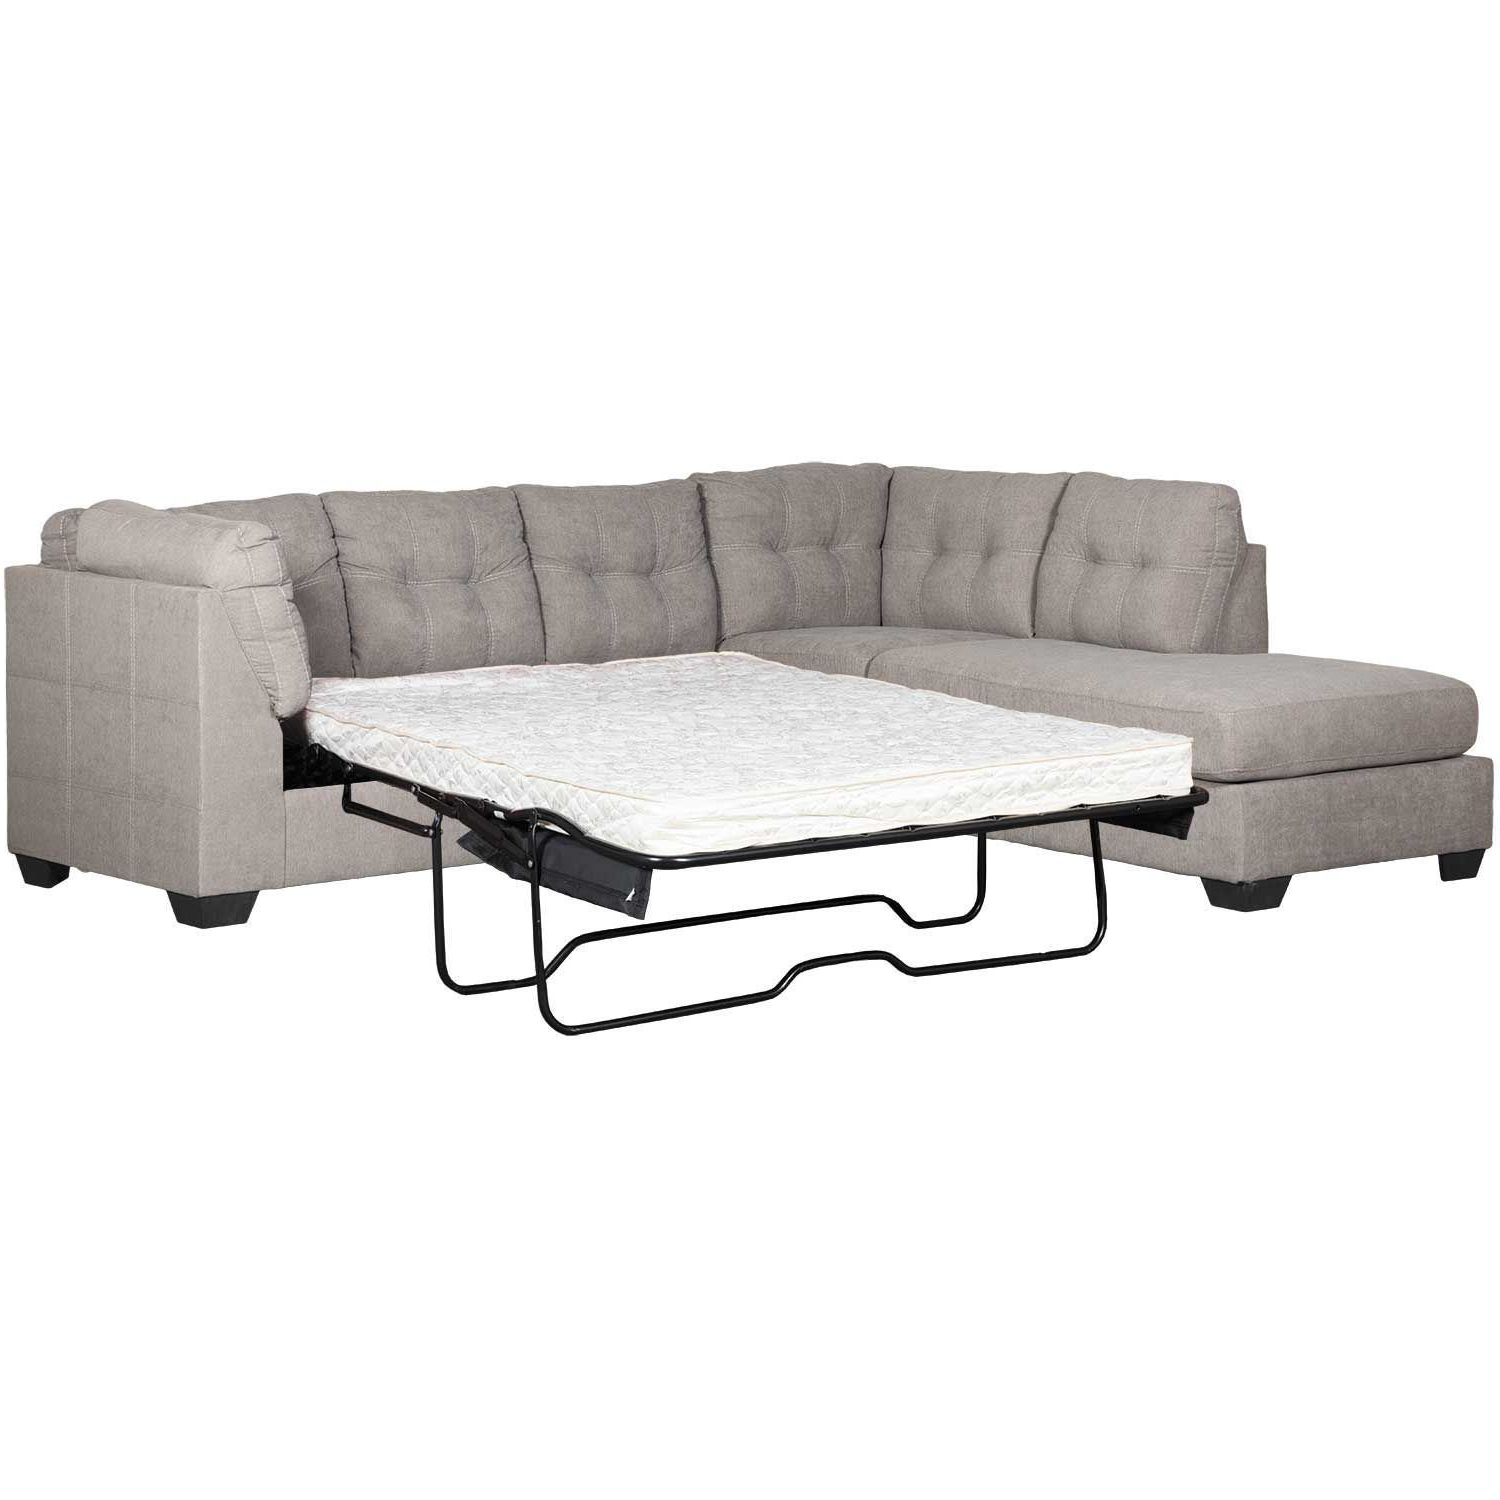 Most Current Lucy Grey 2 Piece Sleeper Sectionals With Raf Chaise With Sleeper Sectional (View 14 of 20)